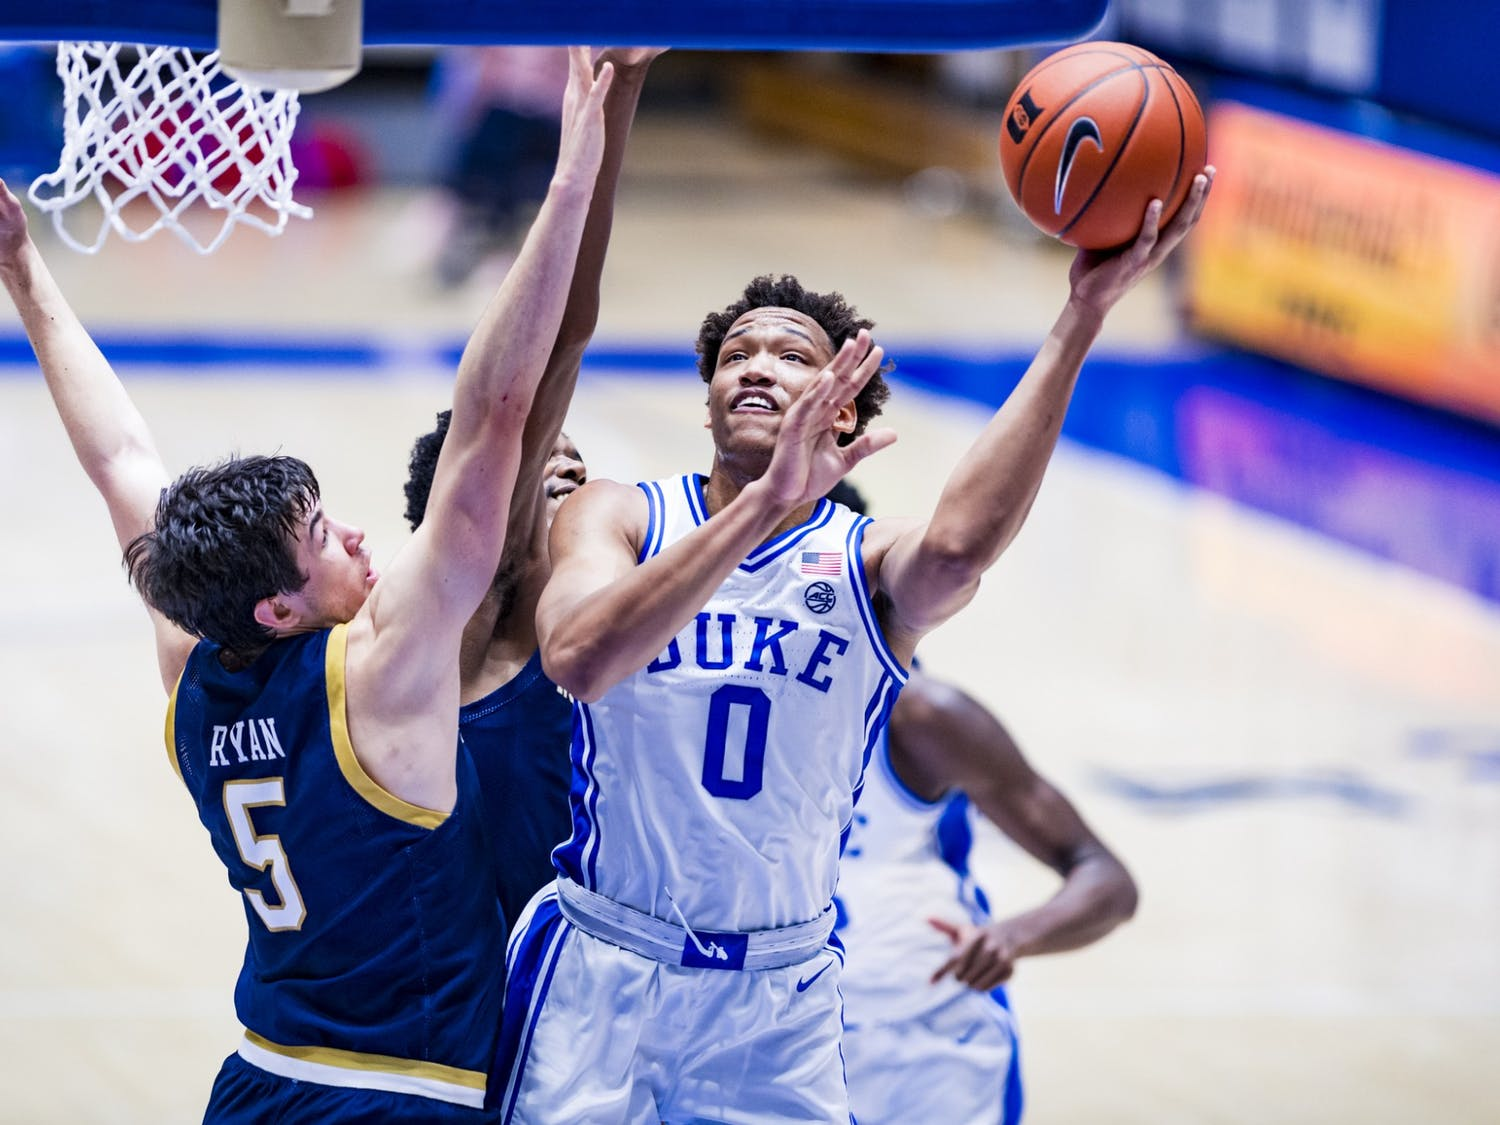 Sophomore Wendell Moore Jr. looks to have found his groove as of late, putting together four consecutive double-digit point games.